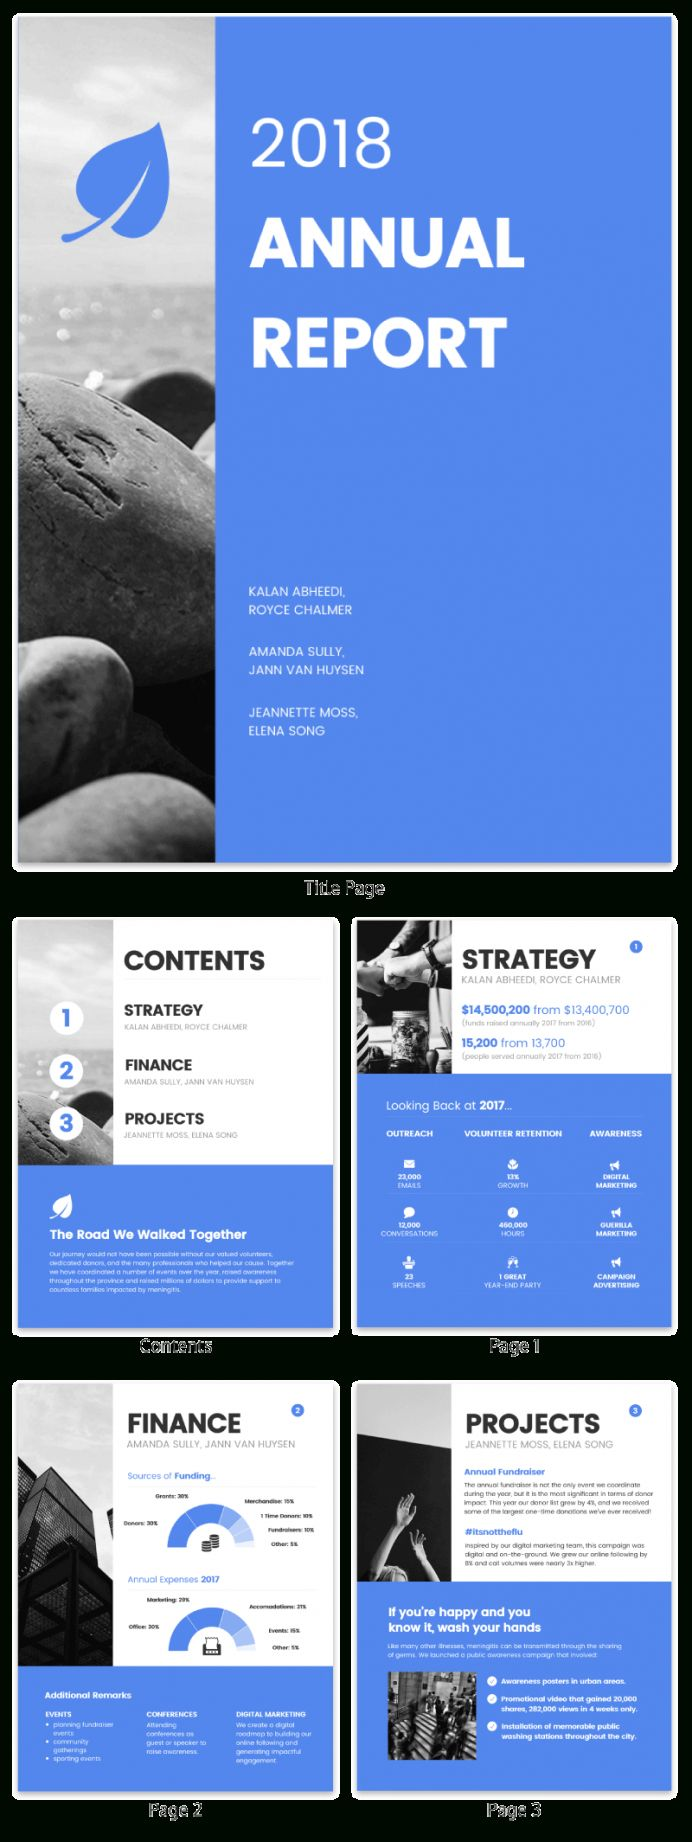 Annual Report Template Word Examples Free Microsoft Inside Hr Annual Report Template Samp In 2020 Report Design Template Annual Report Design Nonprofit Annual Report Nonprofit annual report template free